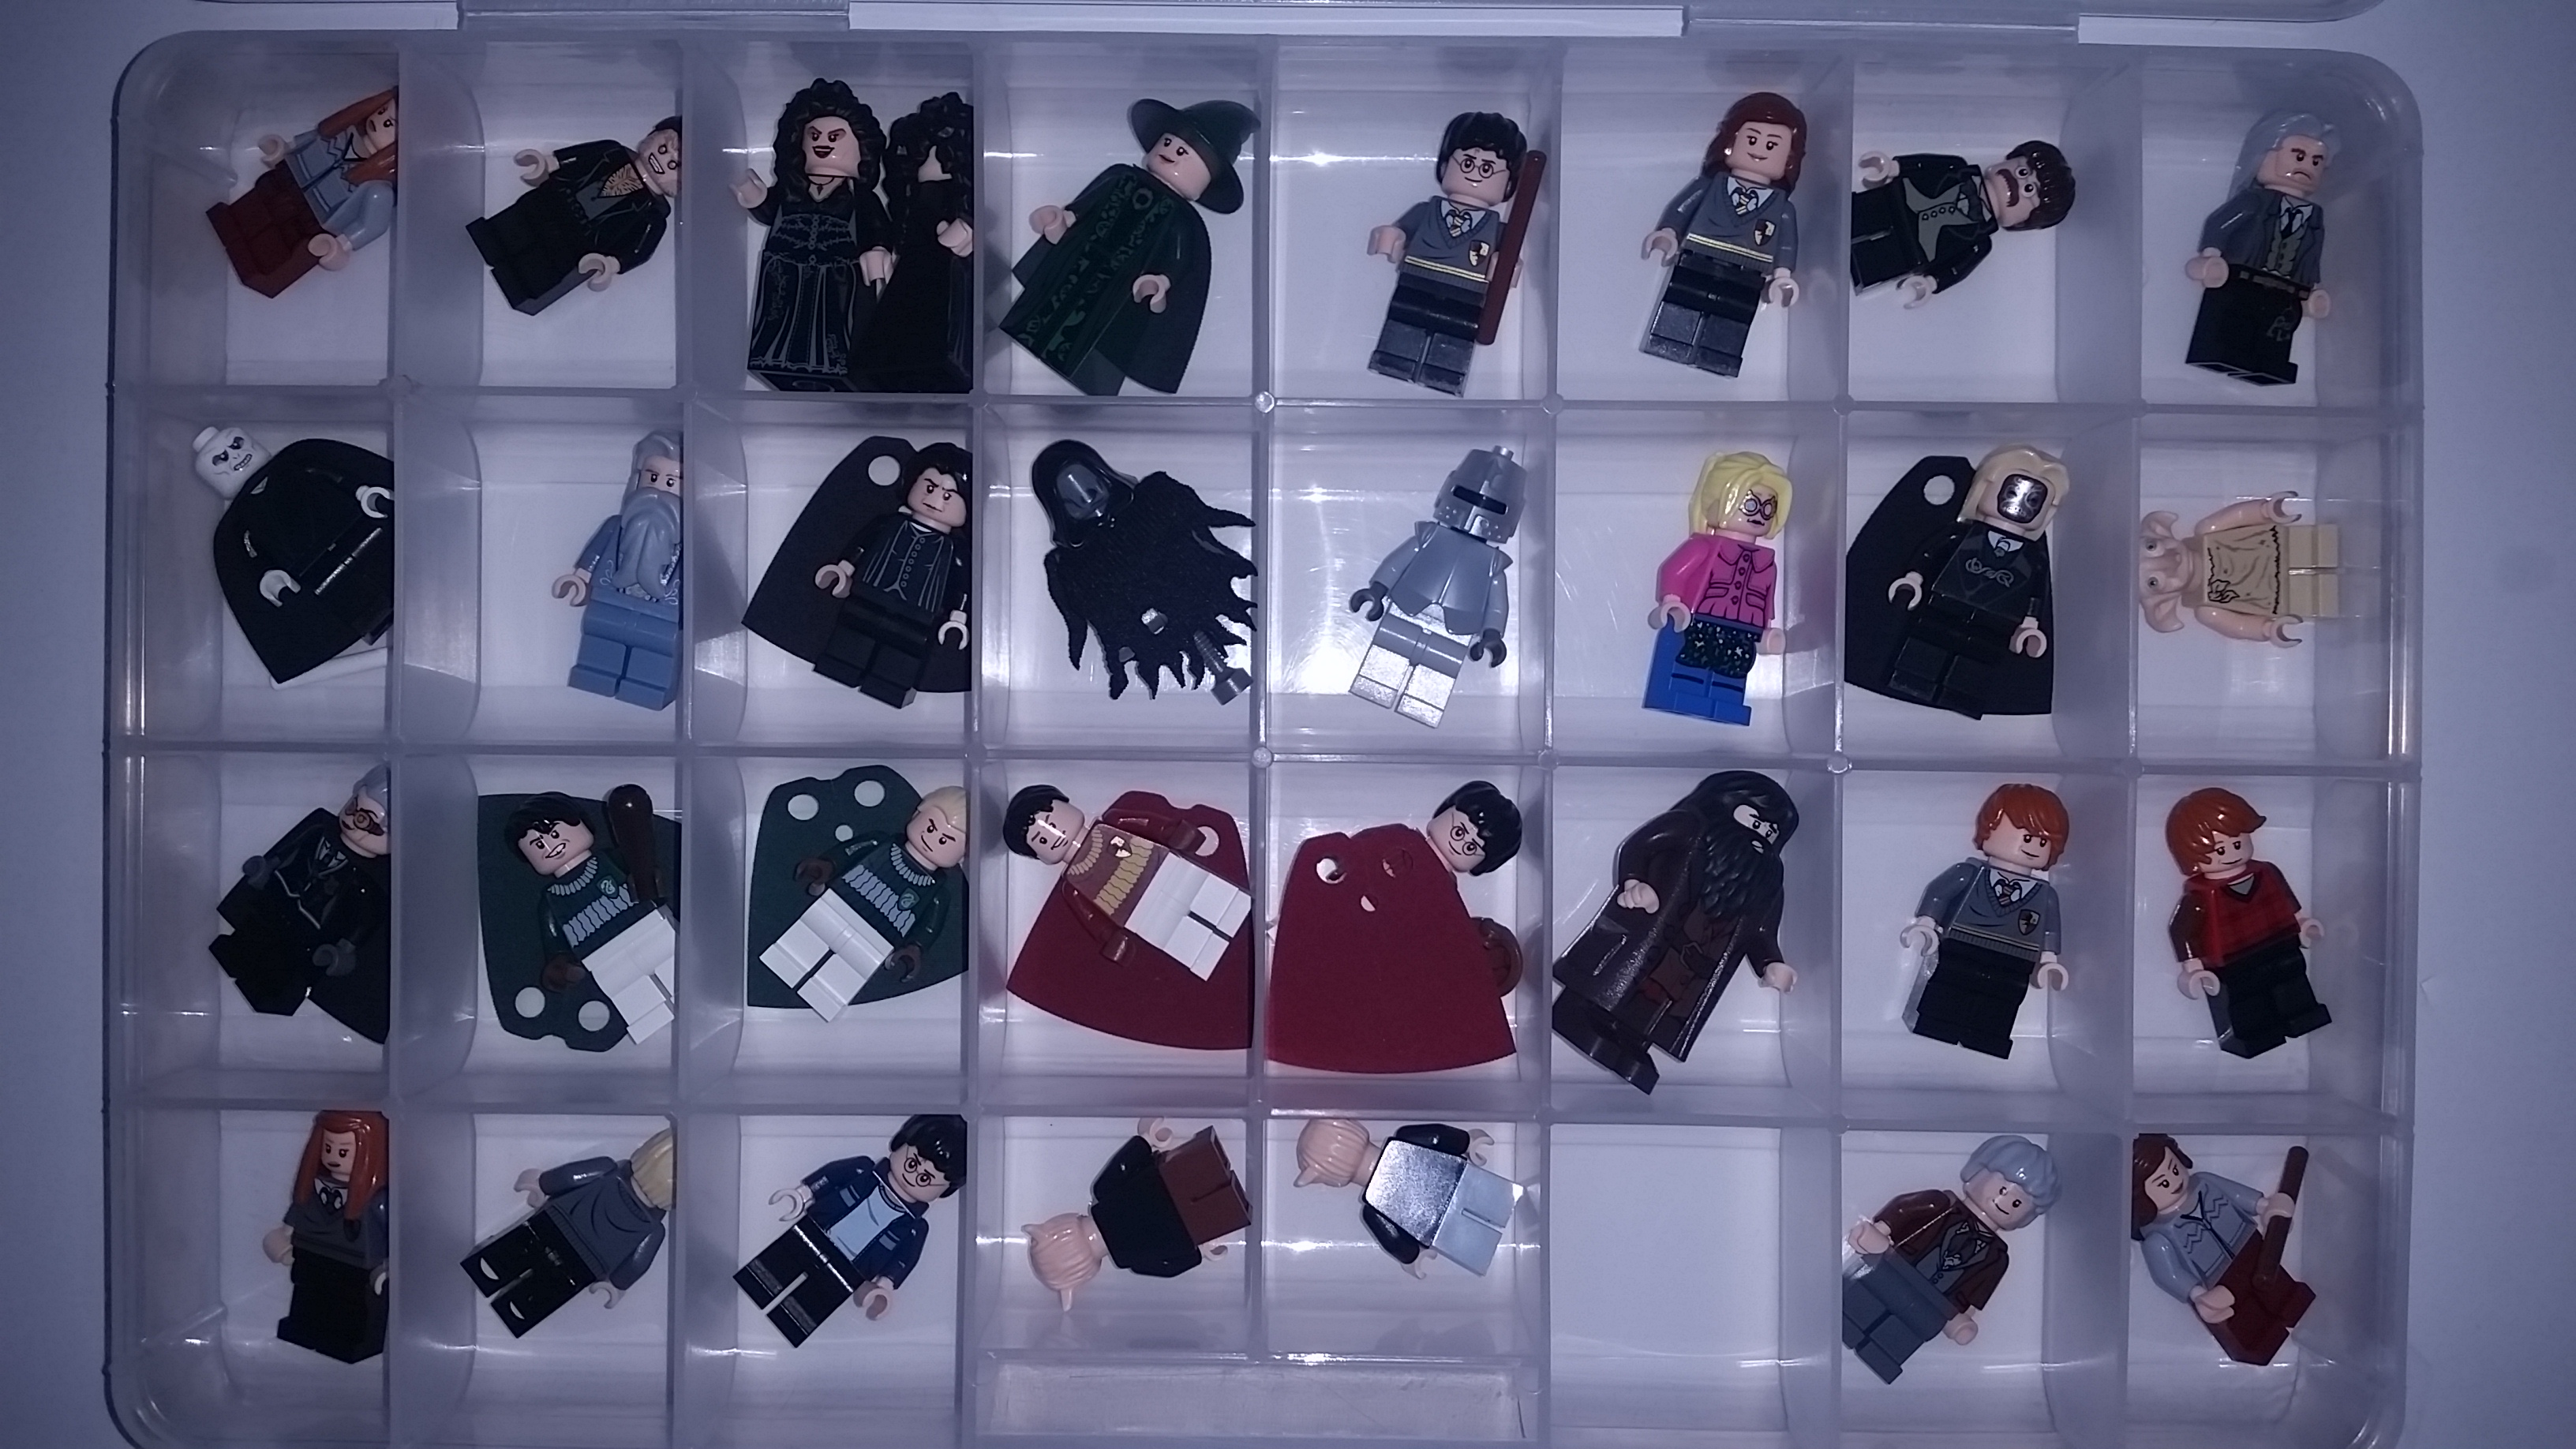 Lego Harry Potter Minifigure Collection From The Asian